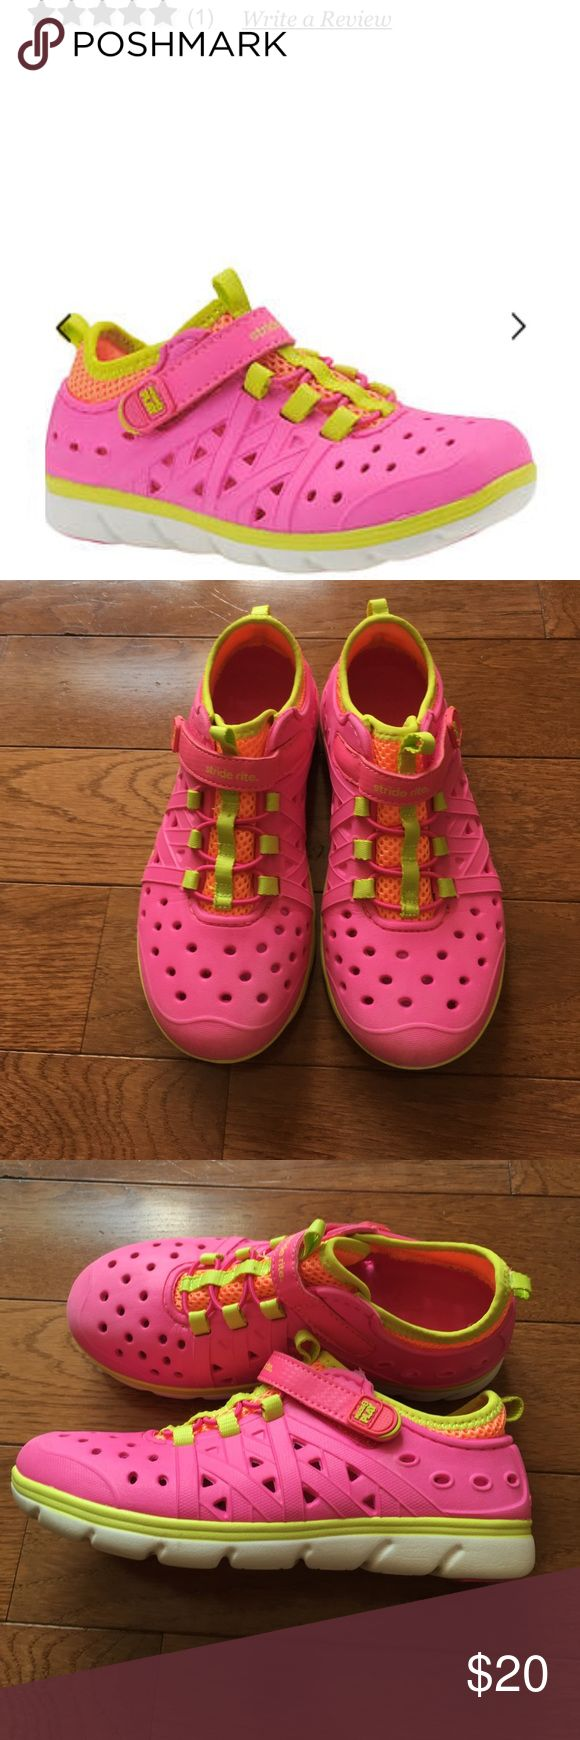 💗Stride Rite Phibian Shoes💗 Girls Stride Rite Phibian Shoes-Excellent Condition!! Worn 3x's- can go from land to water. See specs in pic. Bundle & save!! Stride Rite Shoes